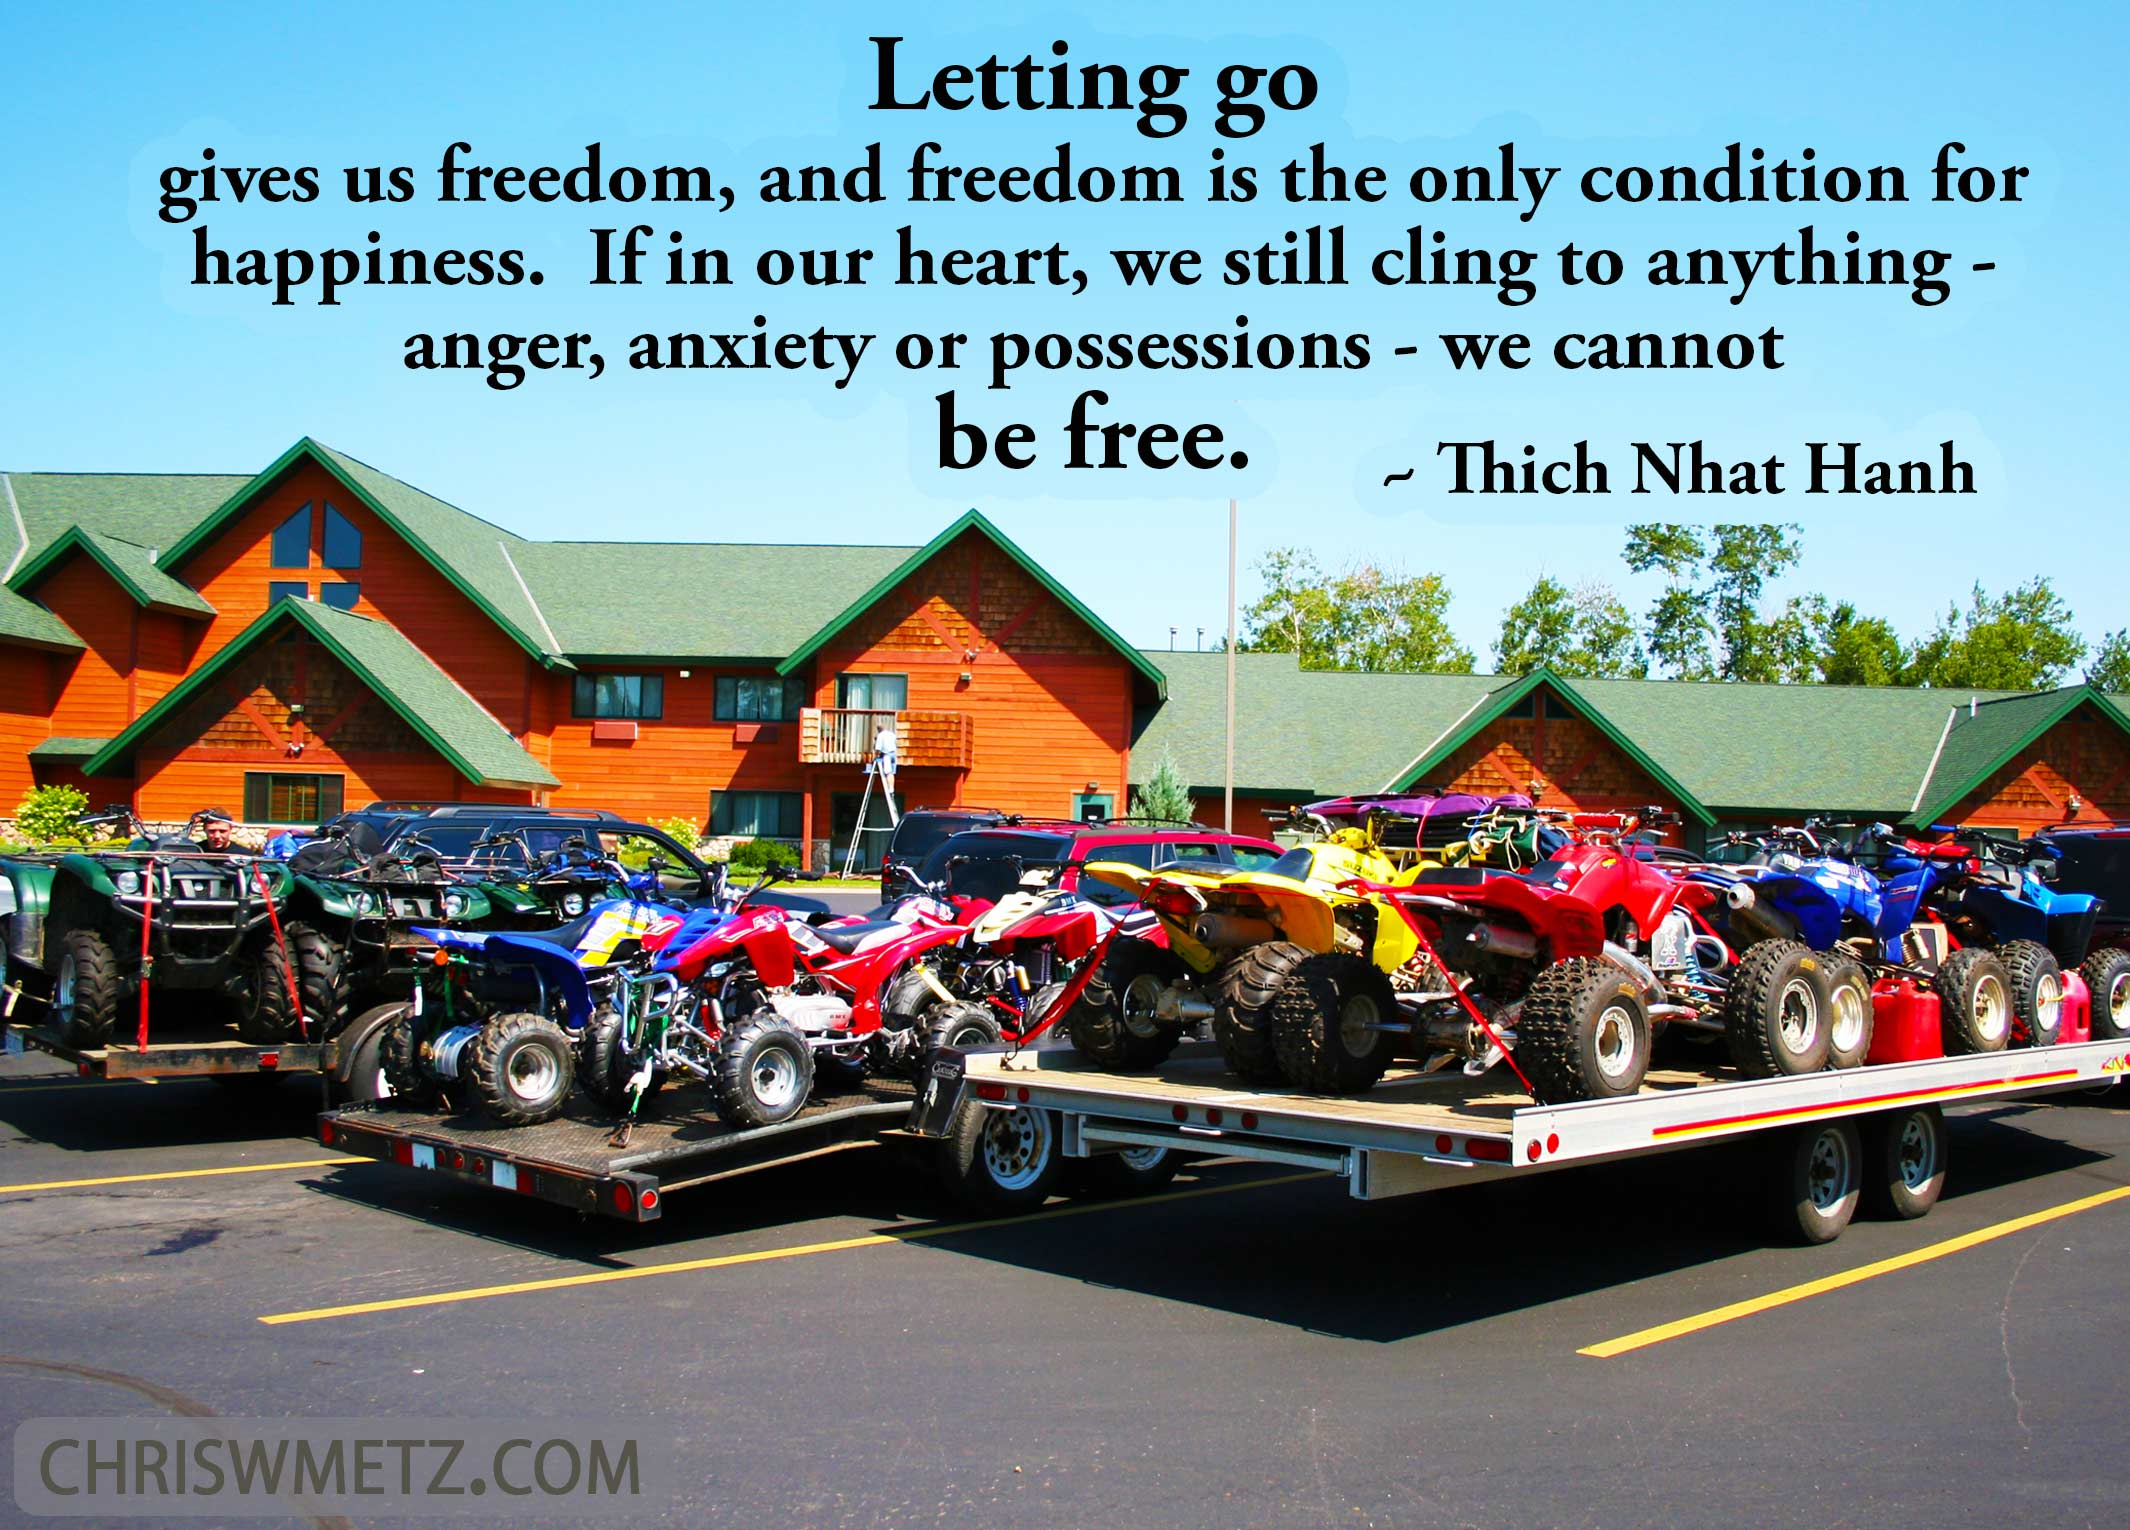 Happiness Quote 4 Thich Nhat Hanh Letting go of emotions